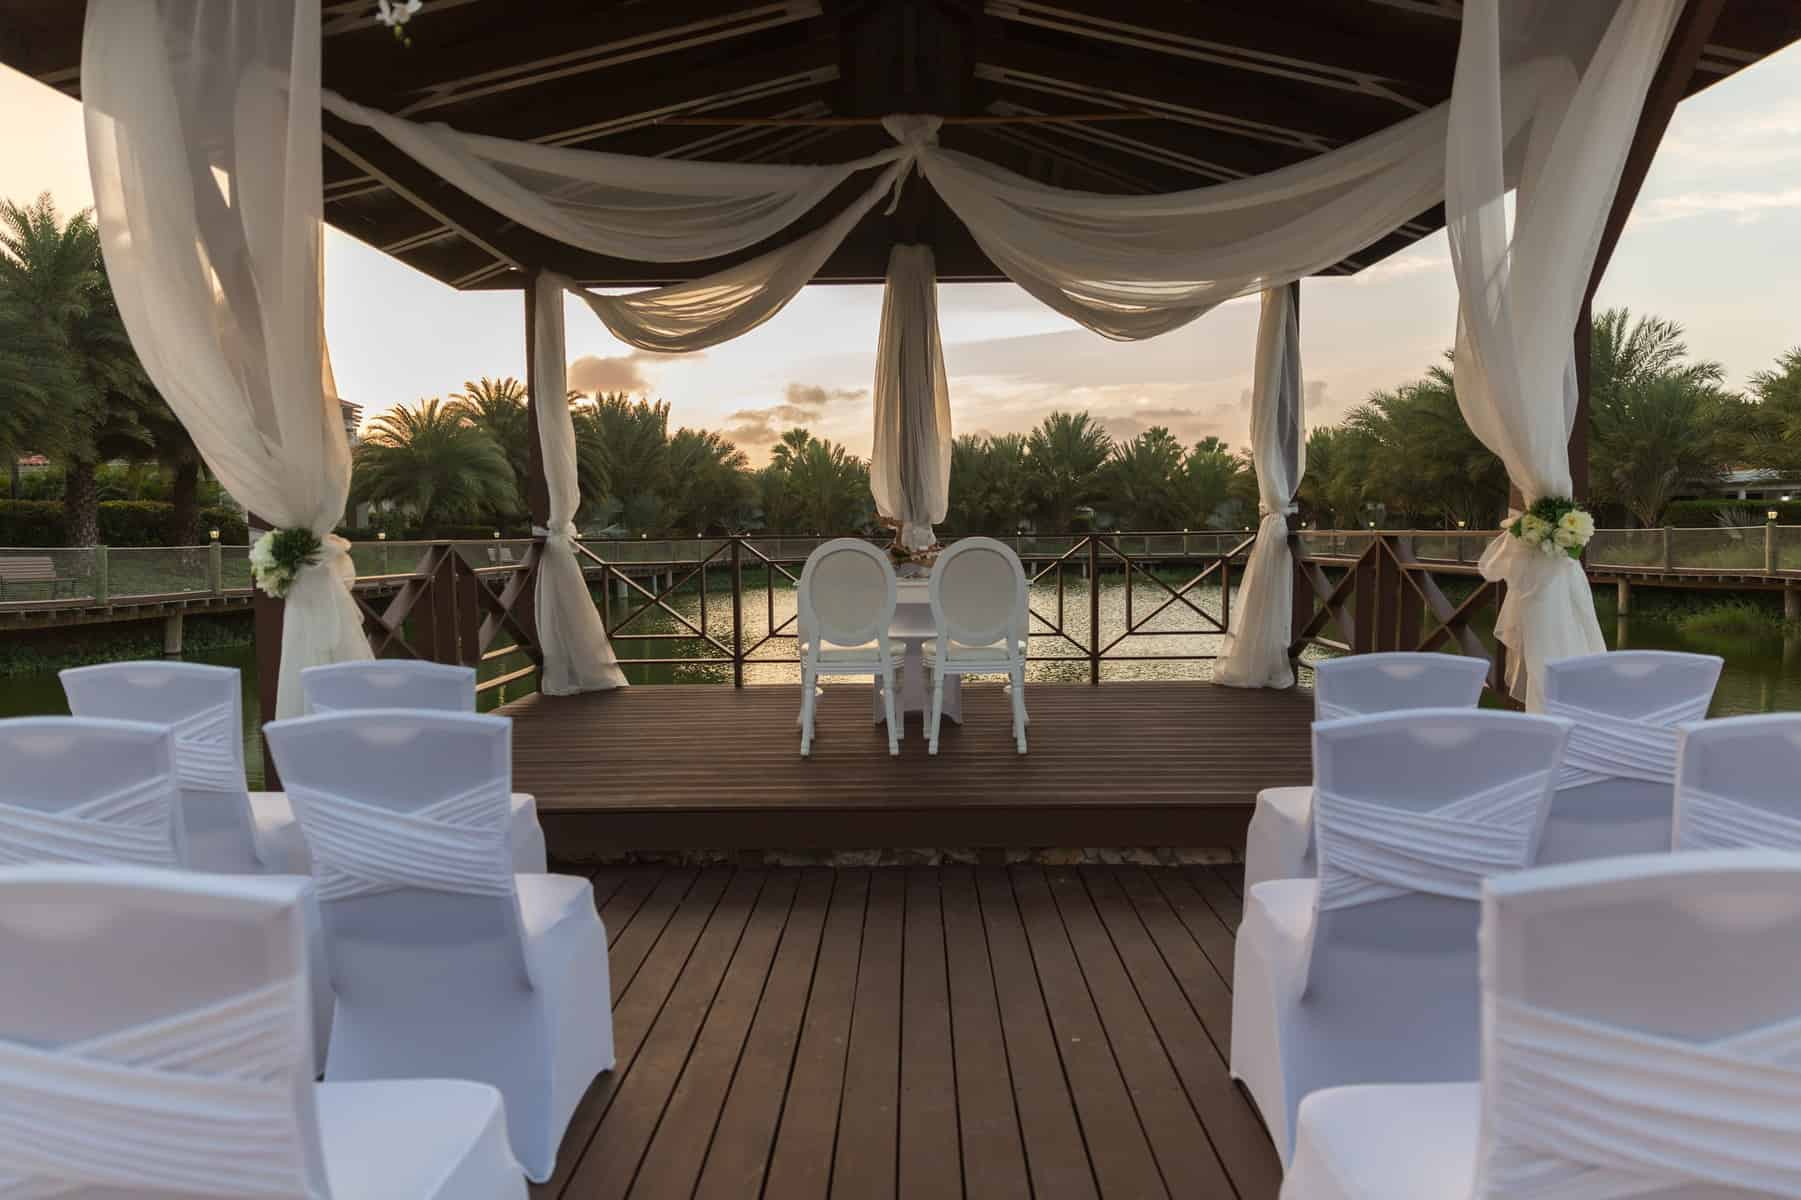 Wedding setup at sunset Acoya Curacao